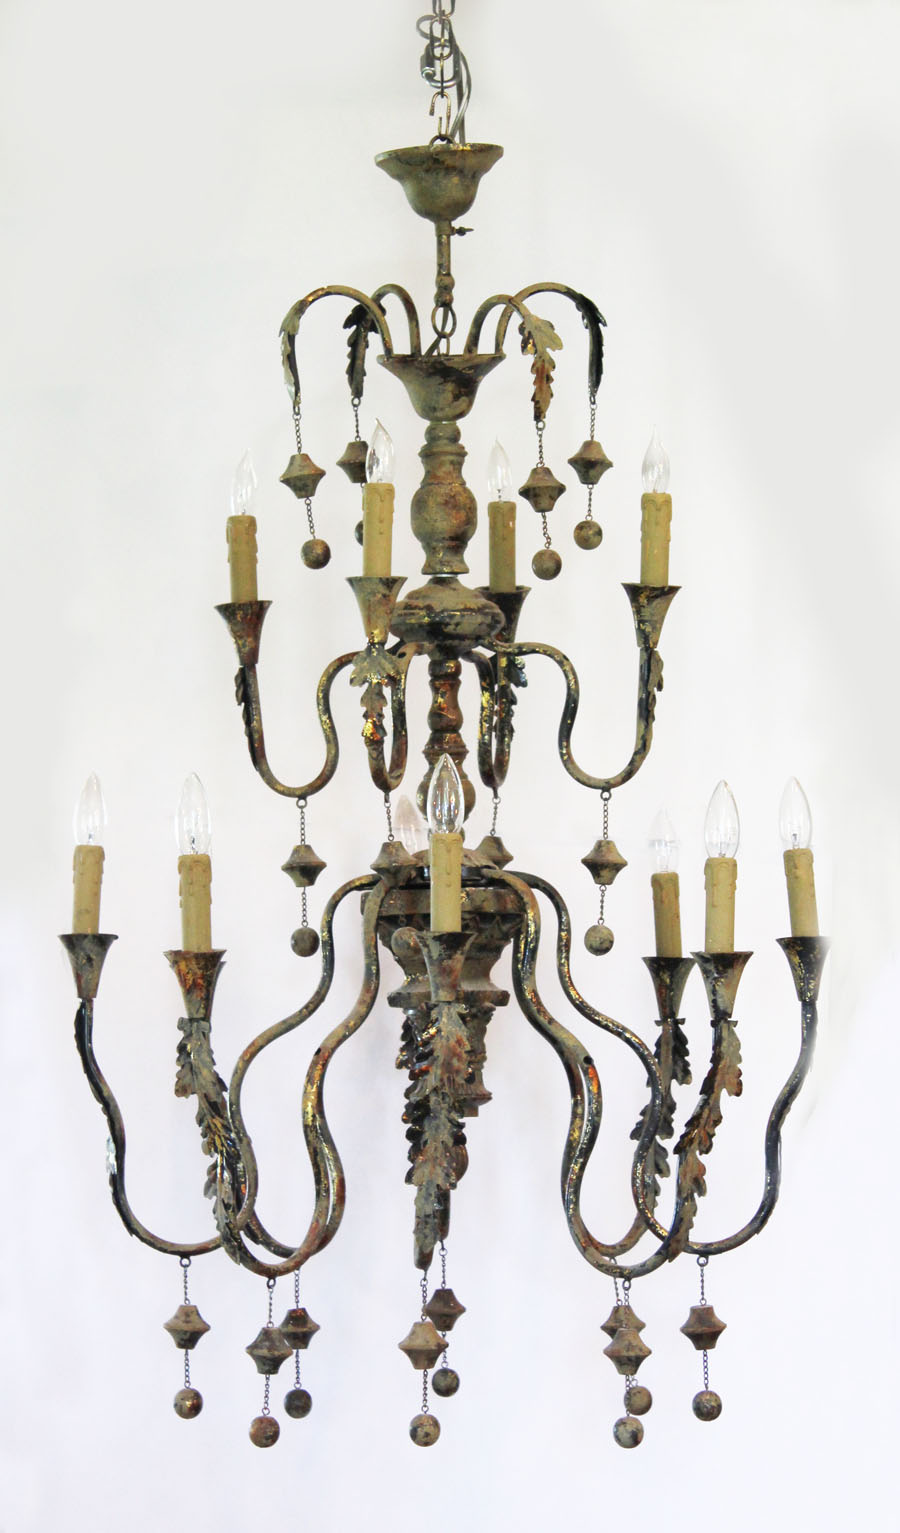 Monumental Xlarge Italian Grand Antique Chandelier